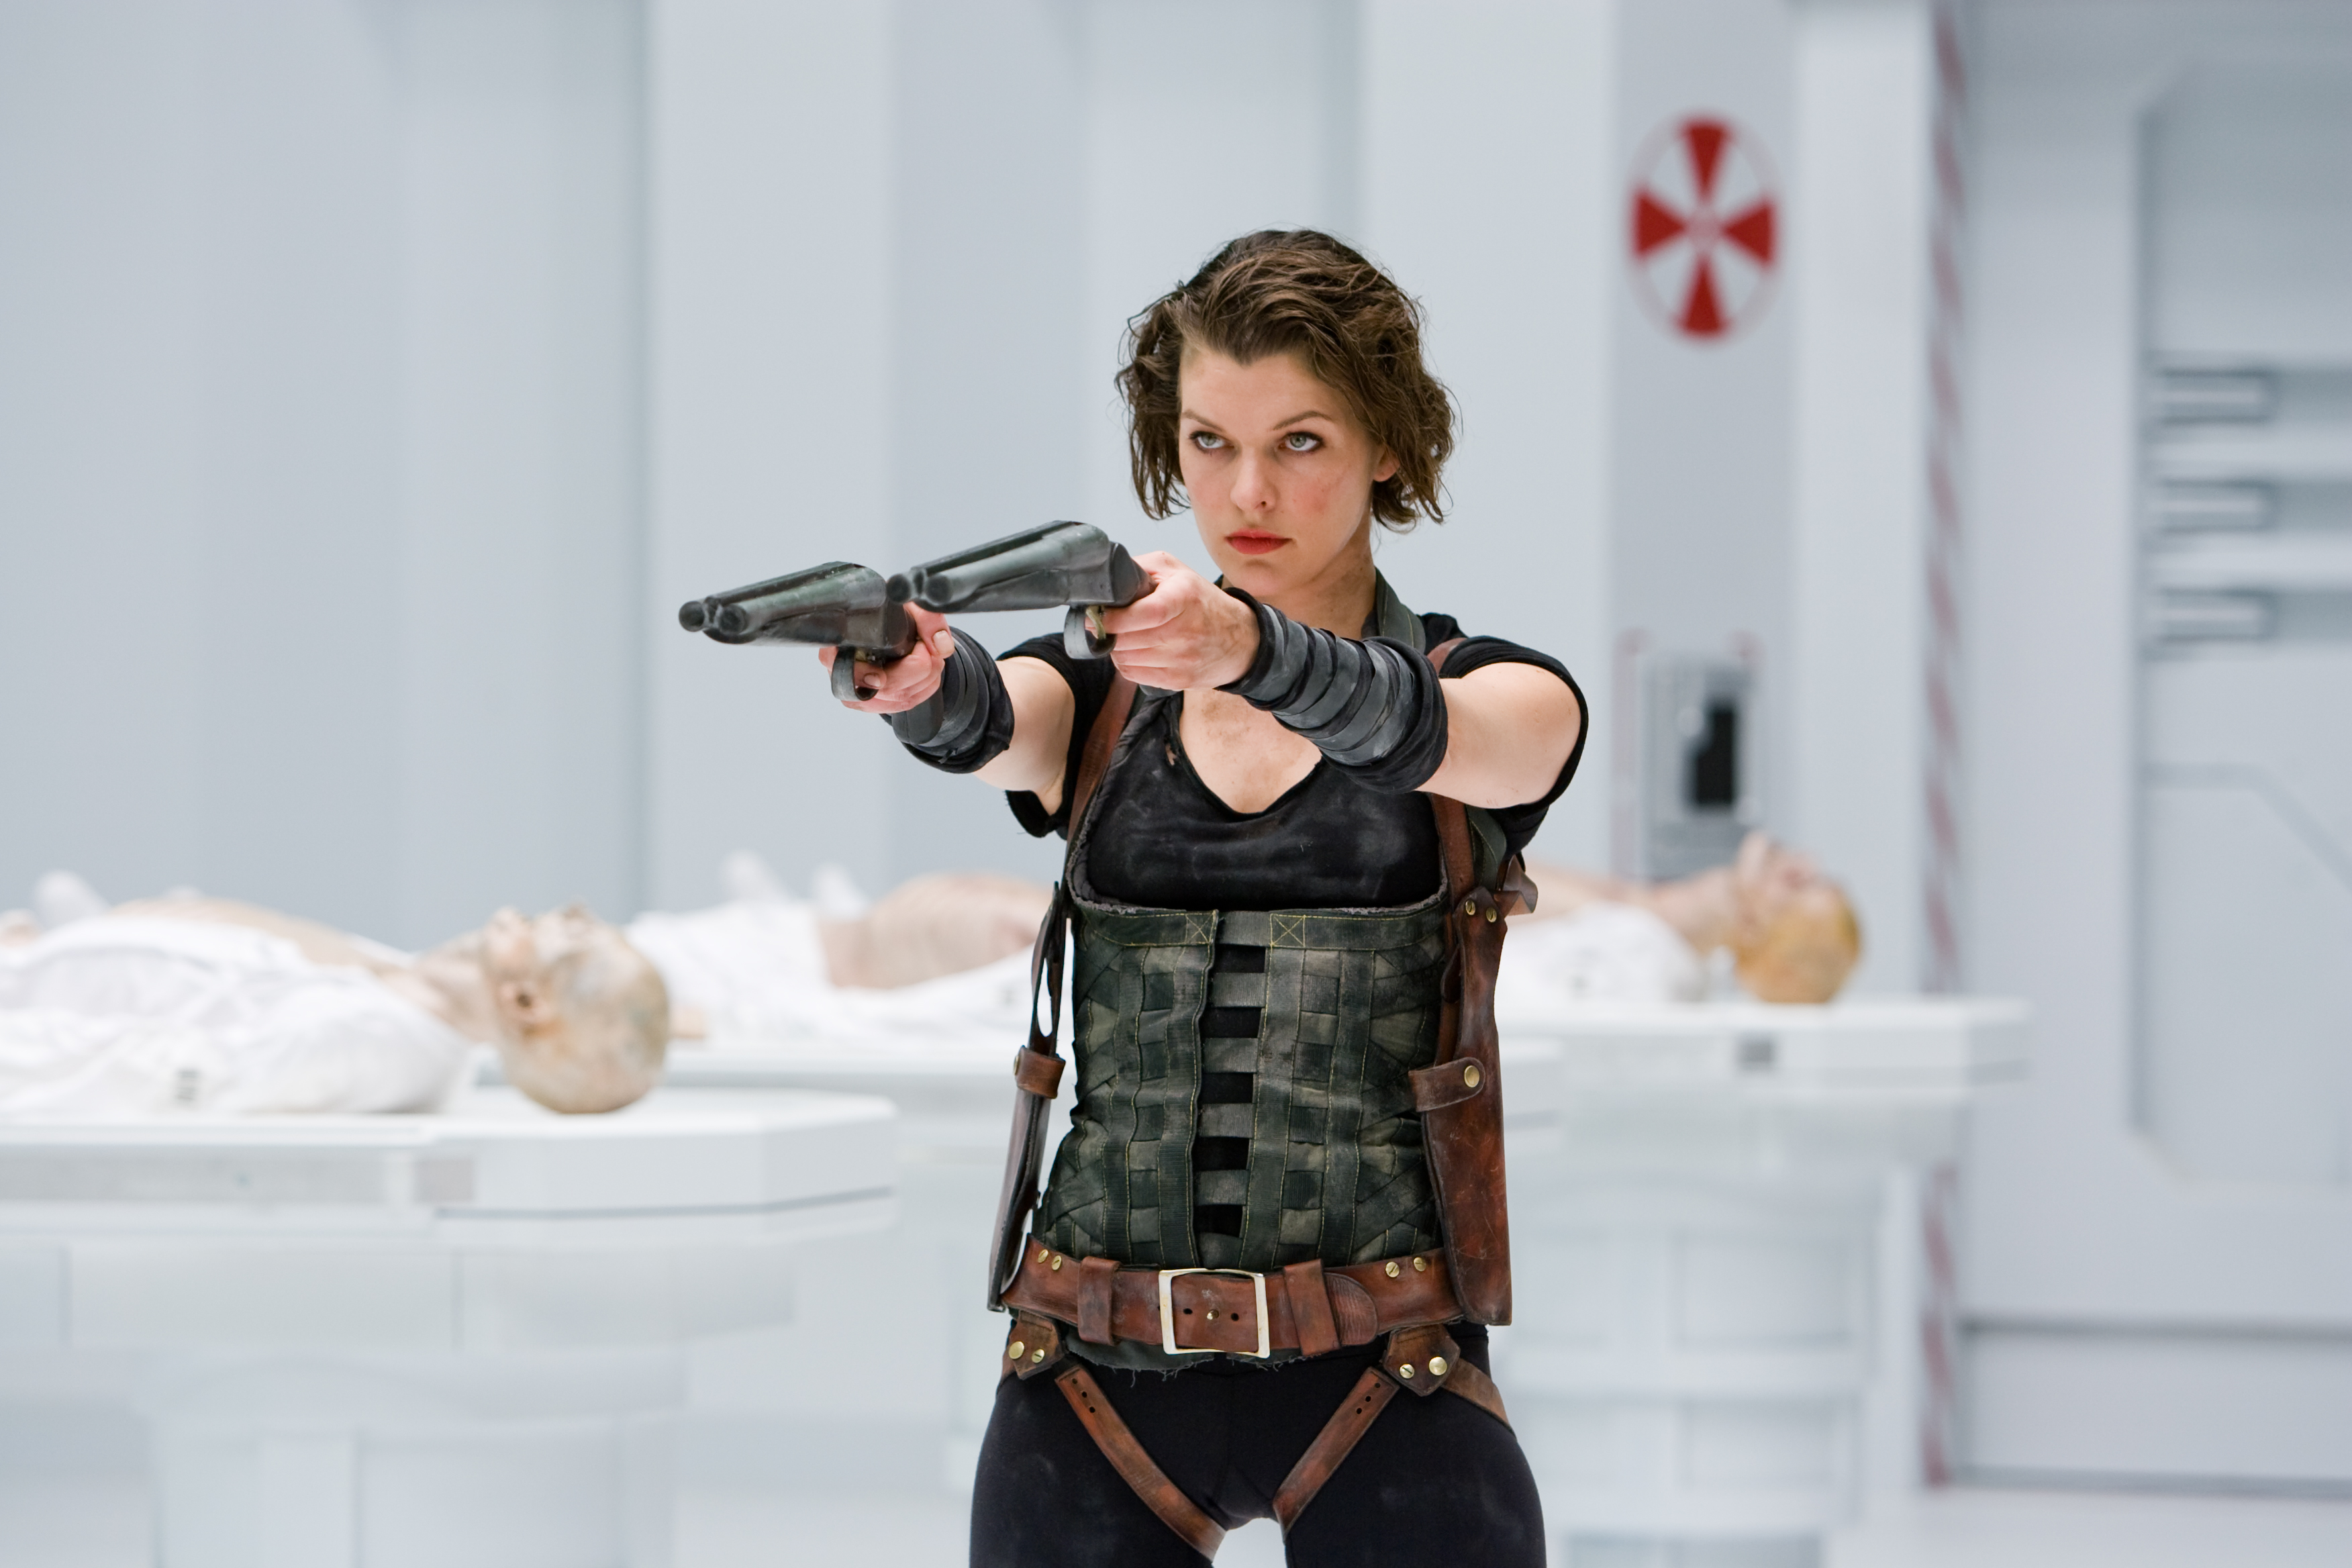 resident evil movies - HD1220×814